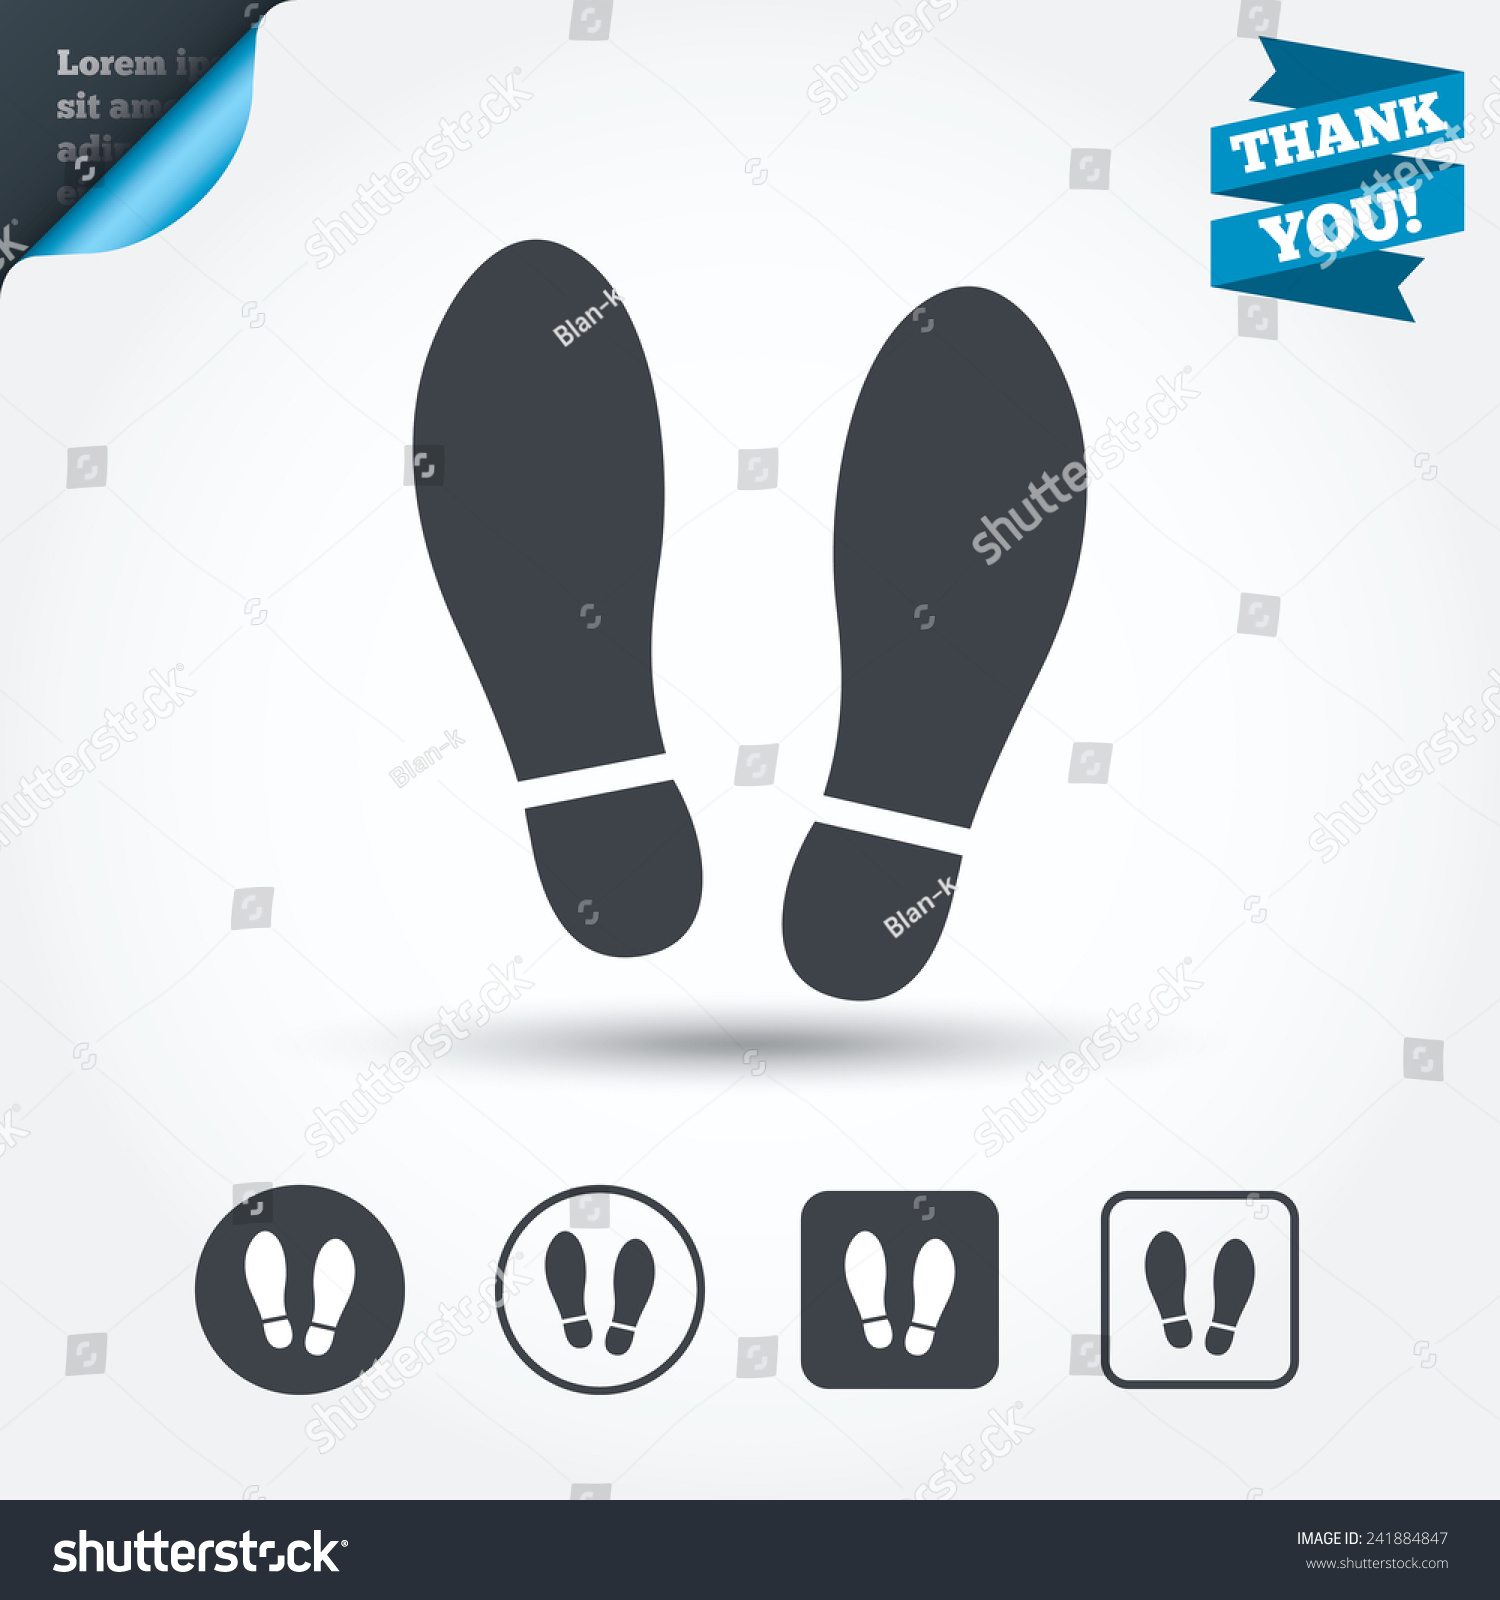 Imprint Soles Shoes Sign Icon Shoe Stock Vector 241884847. Clearsight Lasik Oklahoma City. Locksmith San Francisco Ca Nissan Altima Gxe. Accounting Software In The Cloud. Top 10 Social Media Sites Gym Software System. Ms Project Training Courses Rat Pest Control. Free Website Shopping Cart Los Angeles Solar. Medical Alert System With Fall Detection. Us Cellular 1800 Number It Training Solutions